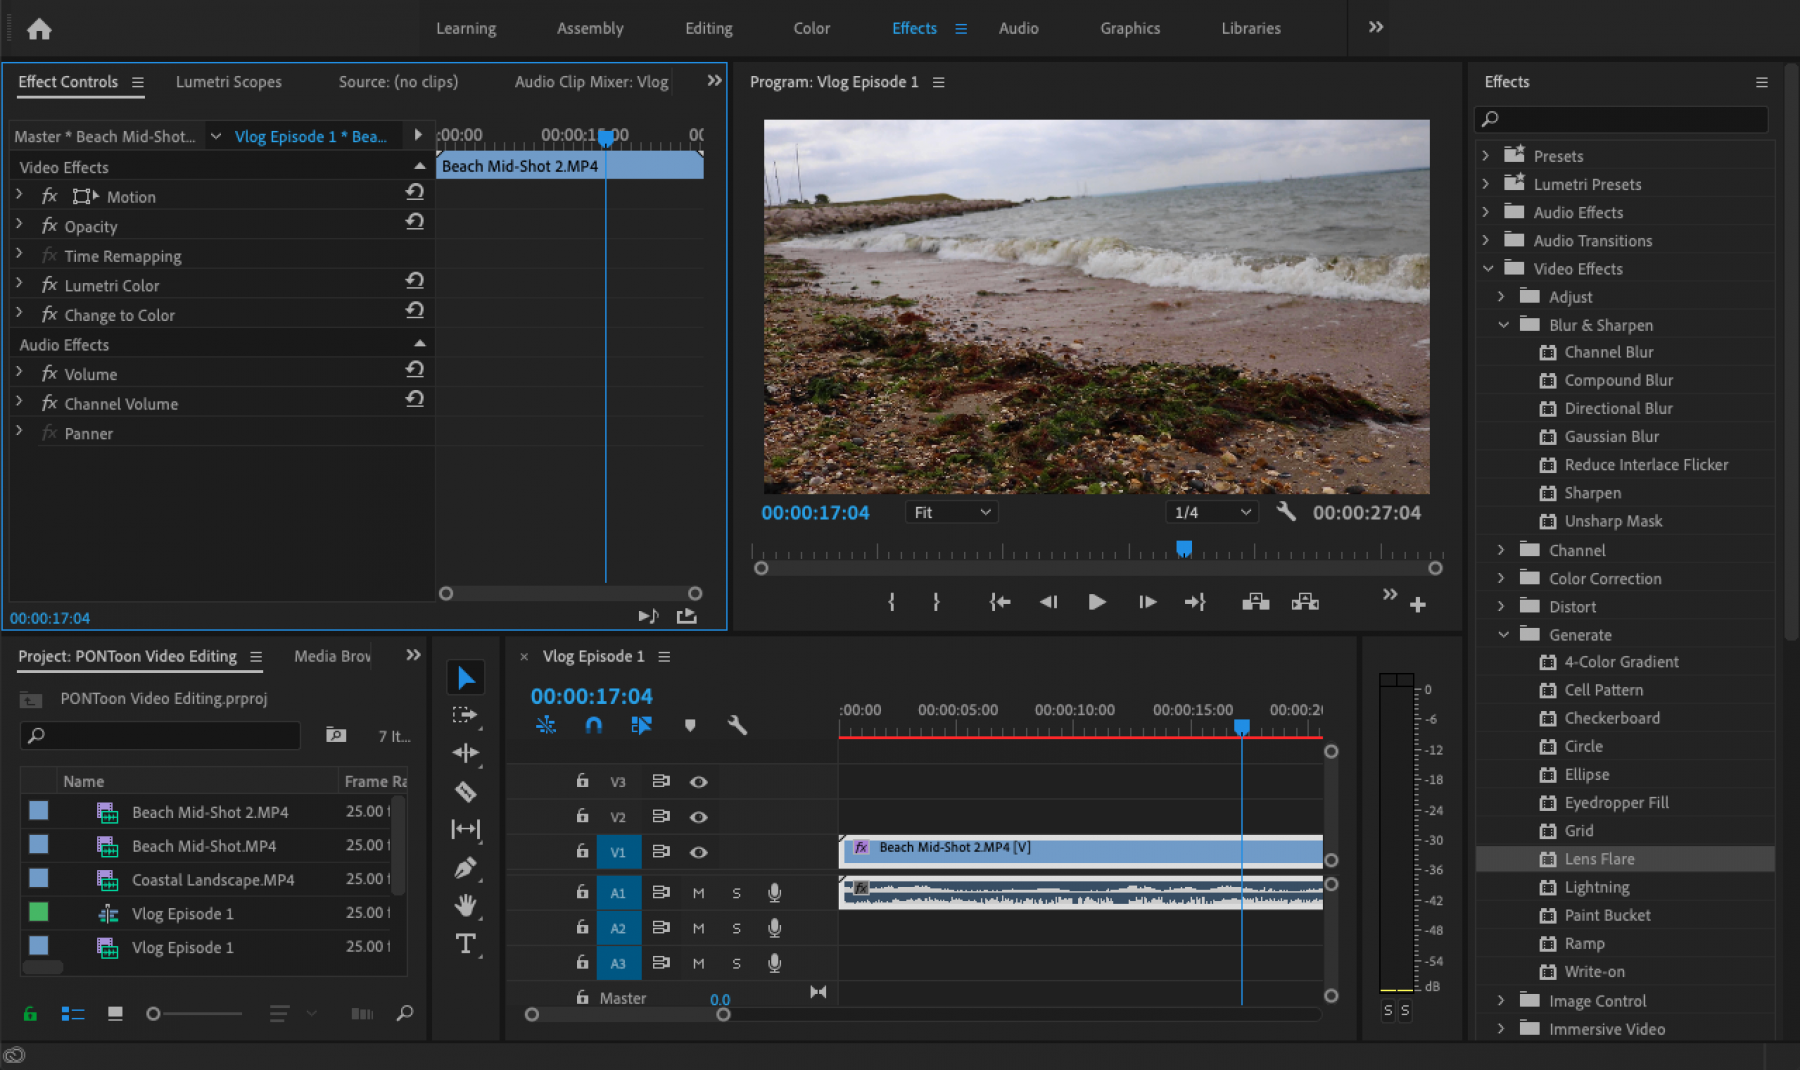 PONToon Video Editing Tutorial - Effects list and controls